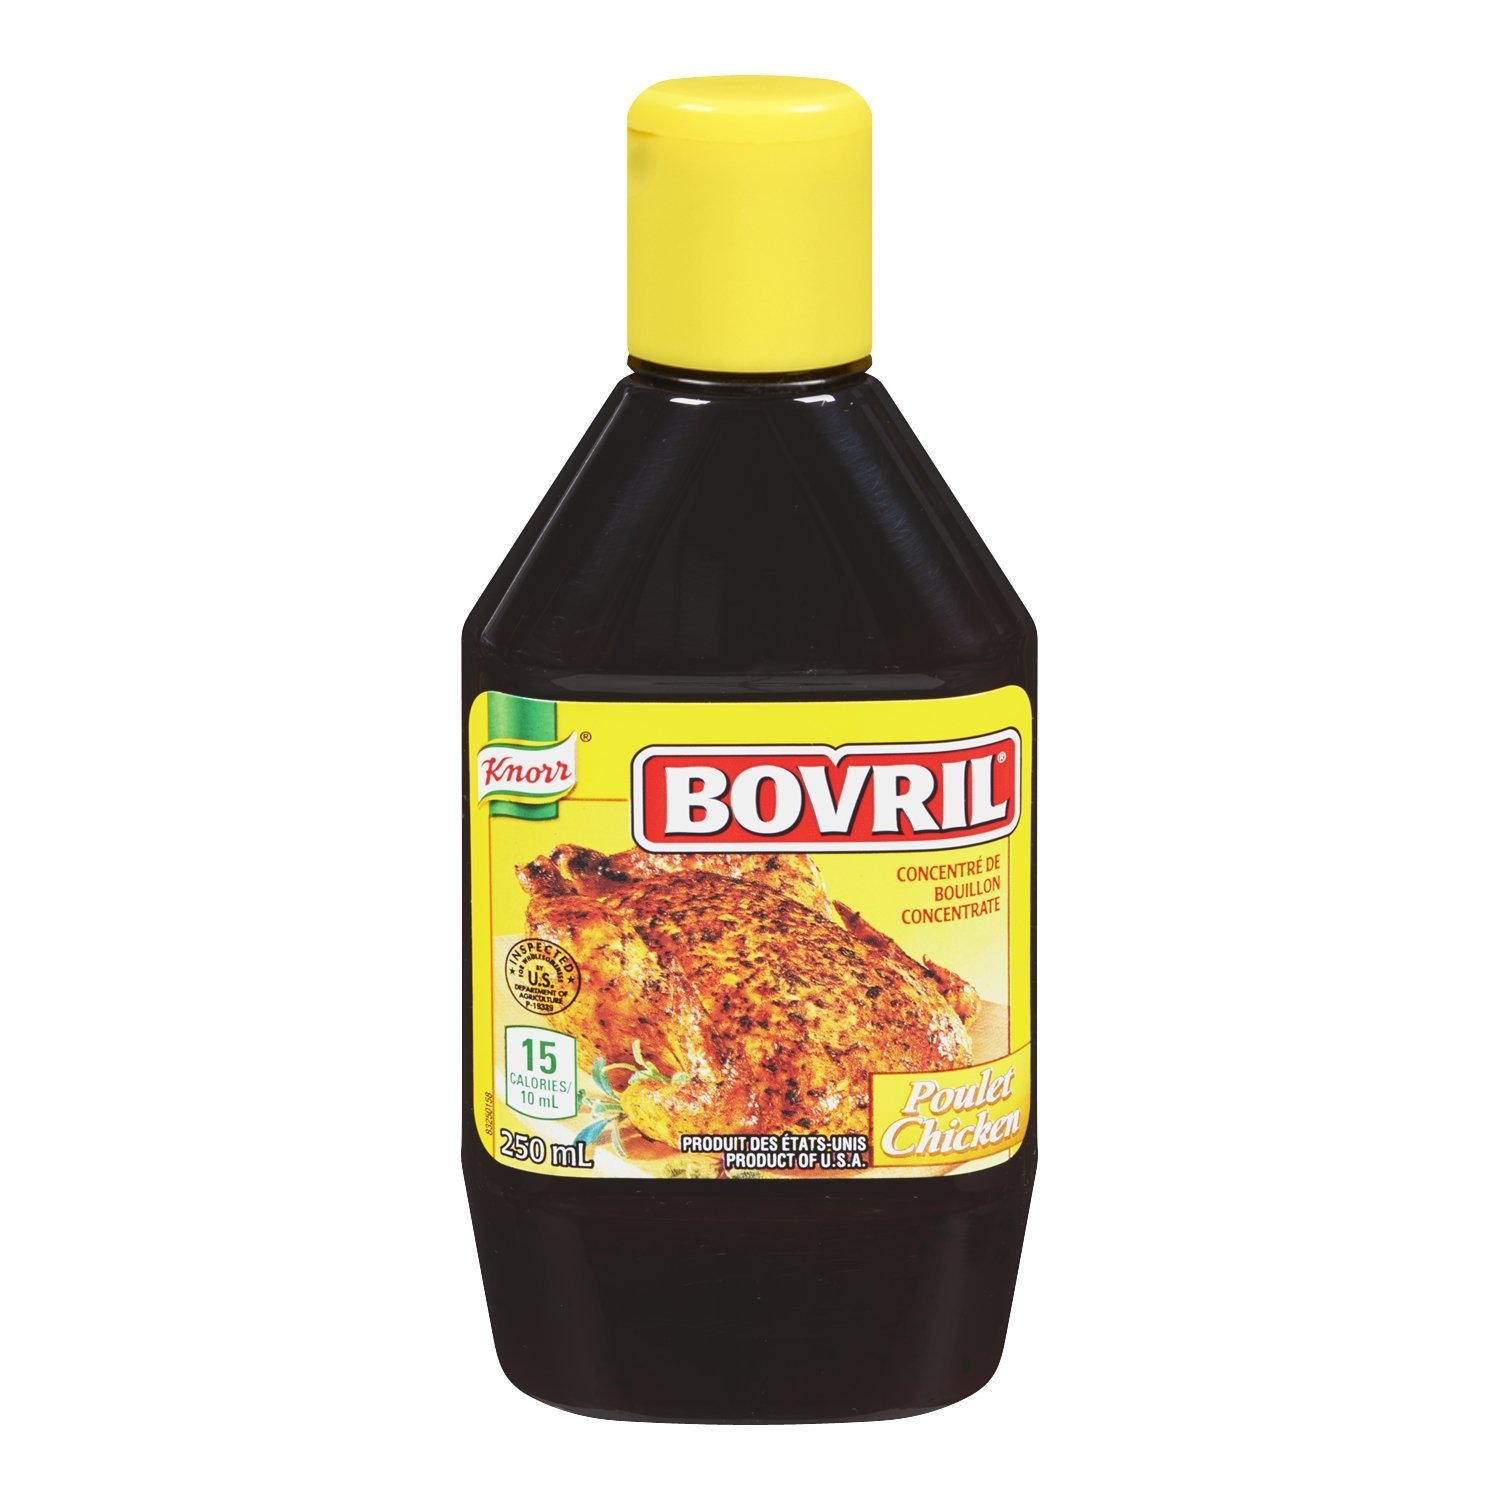 Knorr Bovril Chicken Concentrated Liquid